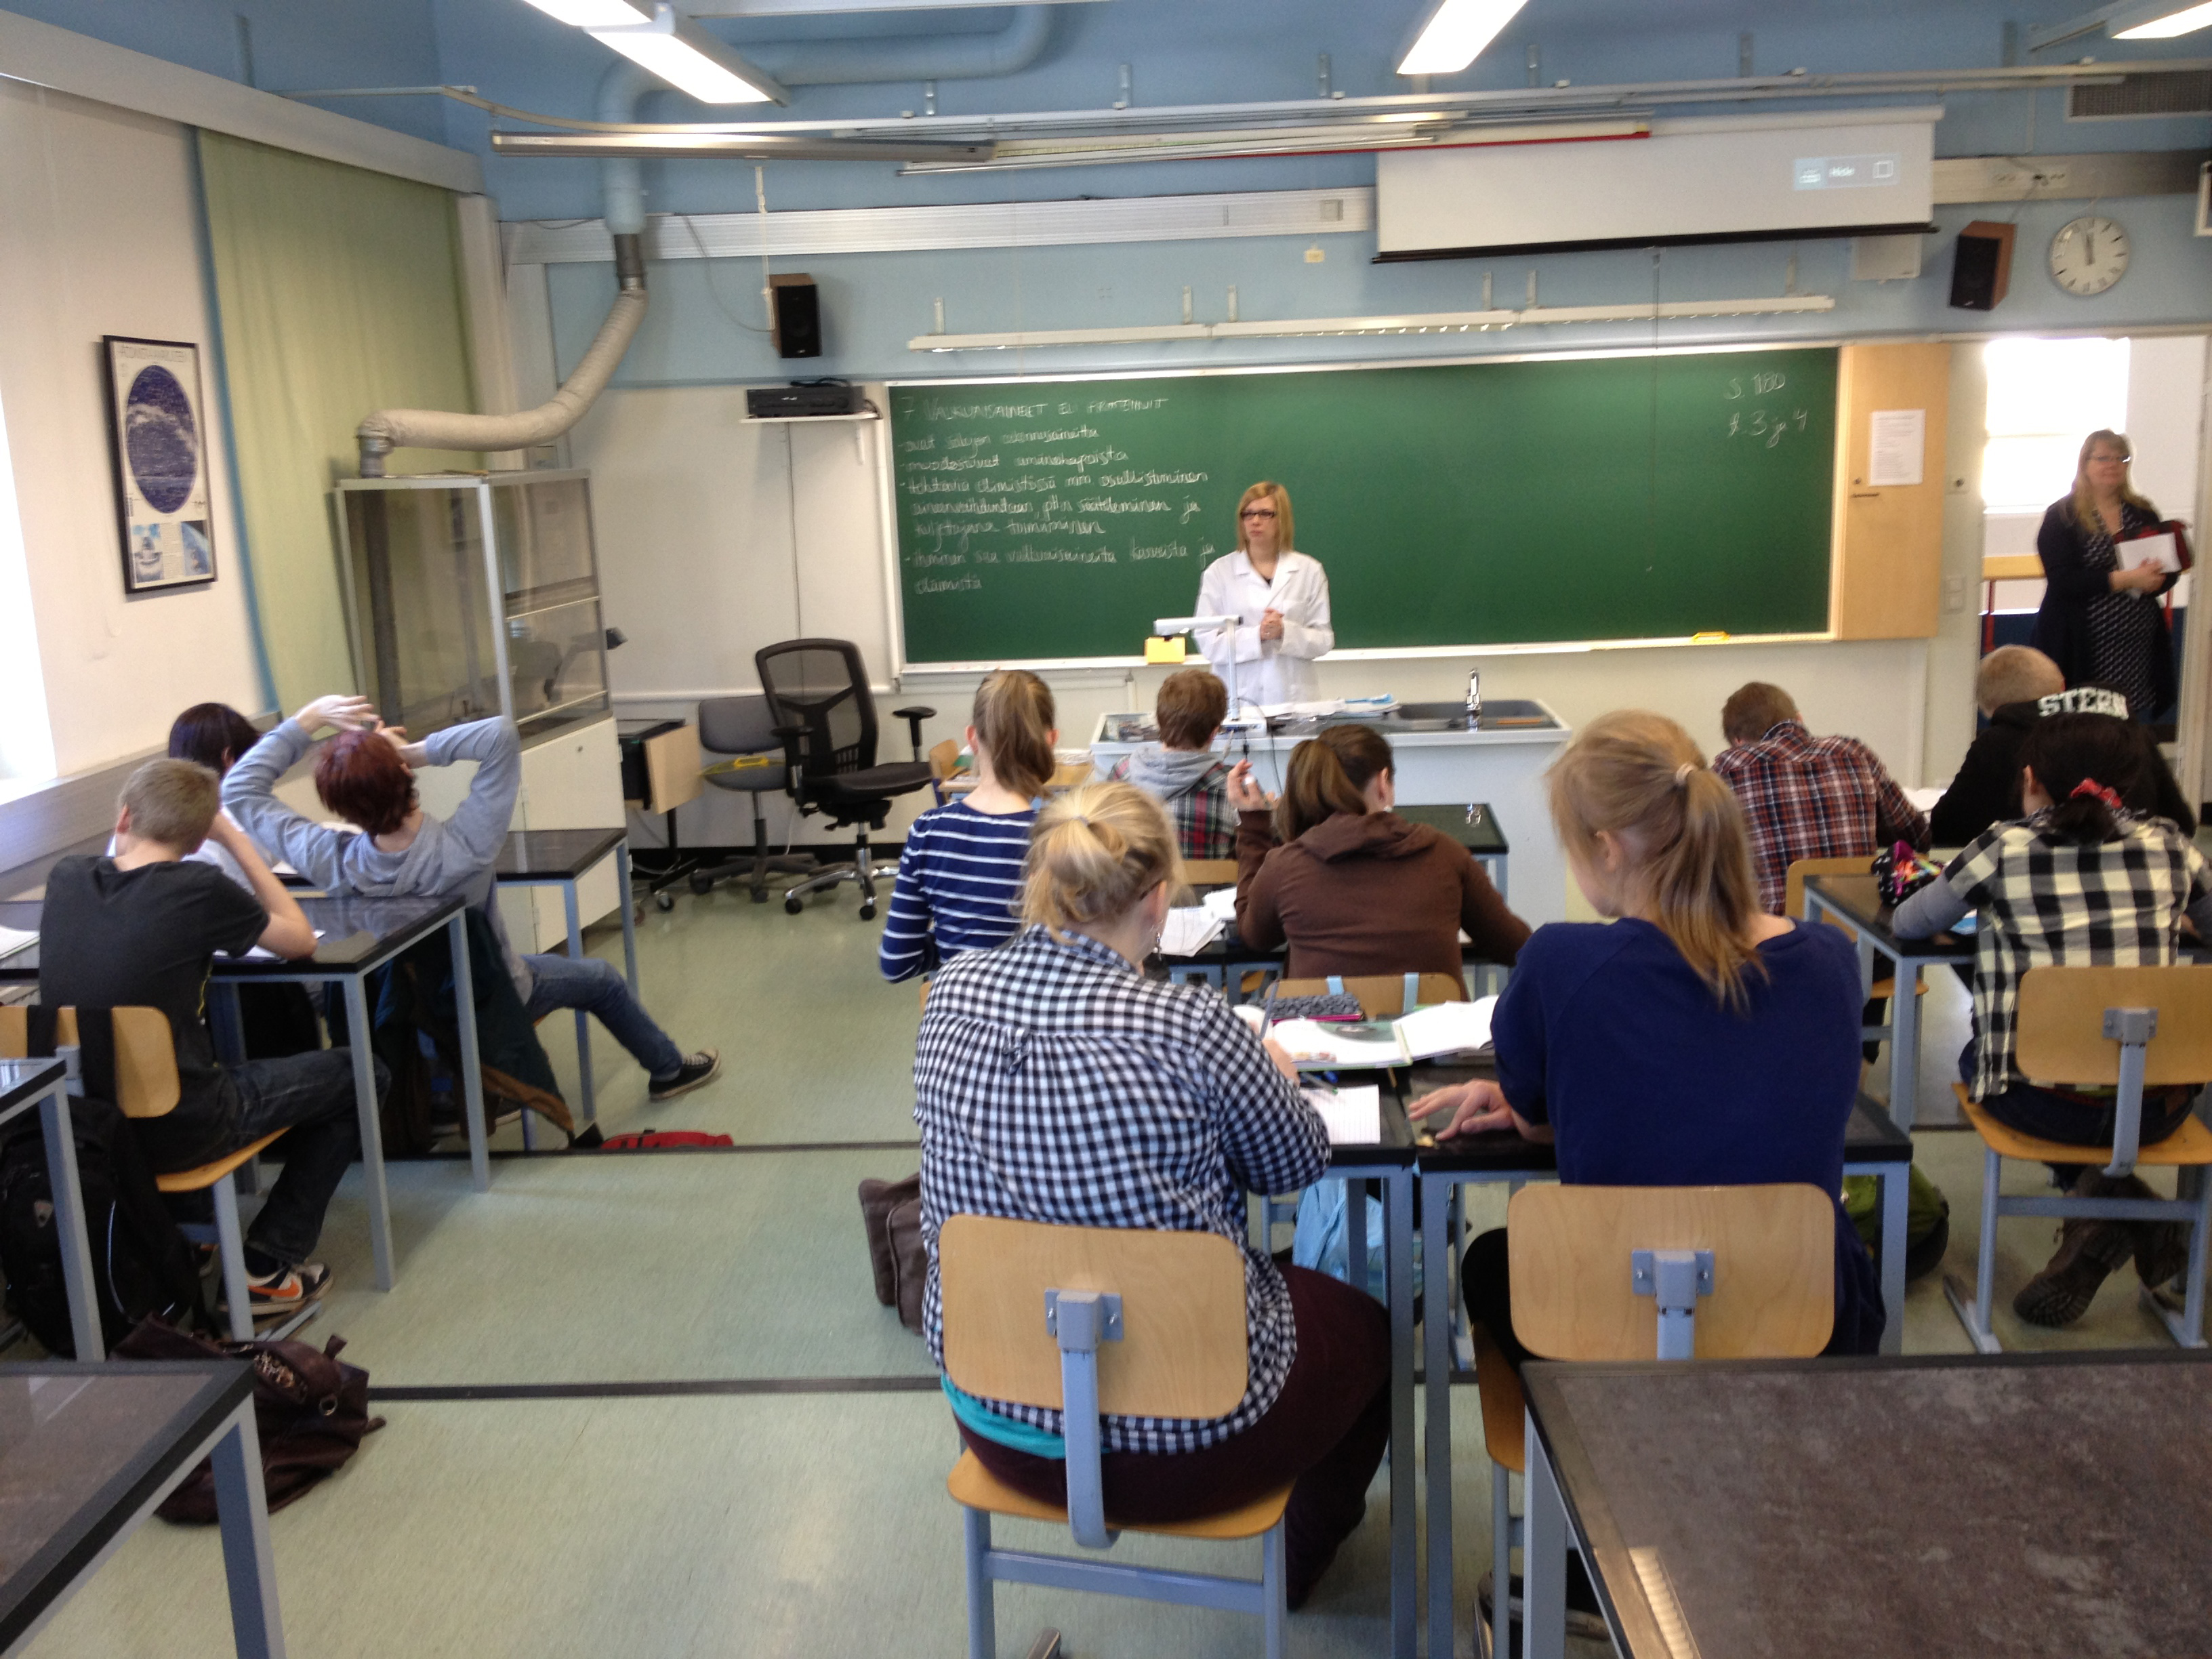 FINLAND EDUCATION—Students at this high school in Jyvaskyla, Finland, spend only about 20 hours in class per week and get less homework than their American counterparts, yet consistently post higher scores on international PISA tests. (Photo: Kevin Oliver, CC BY-NC-ND)